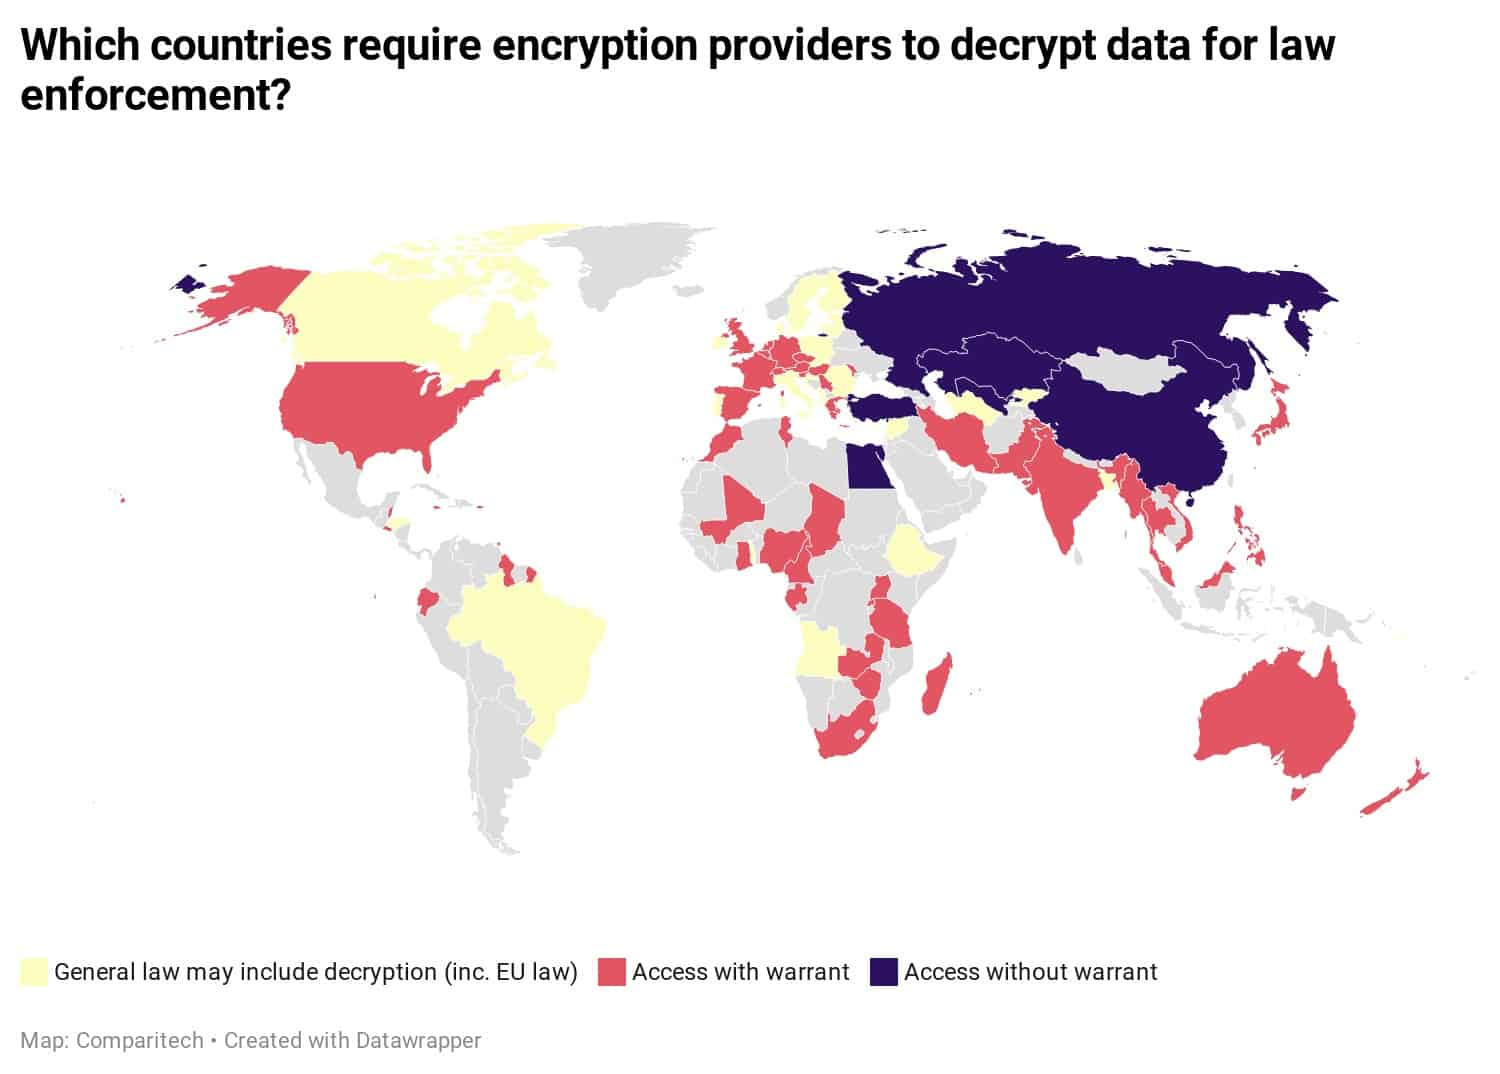 Encryption providers